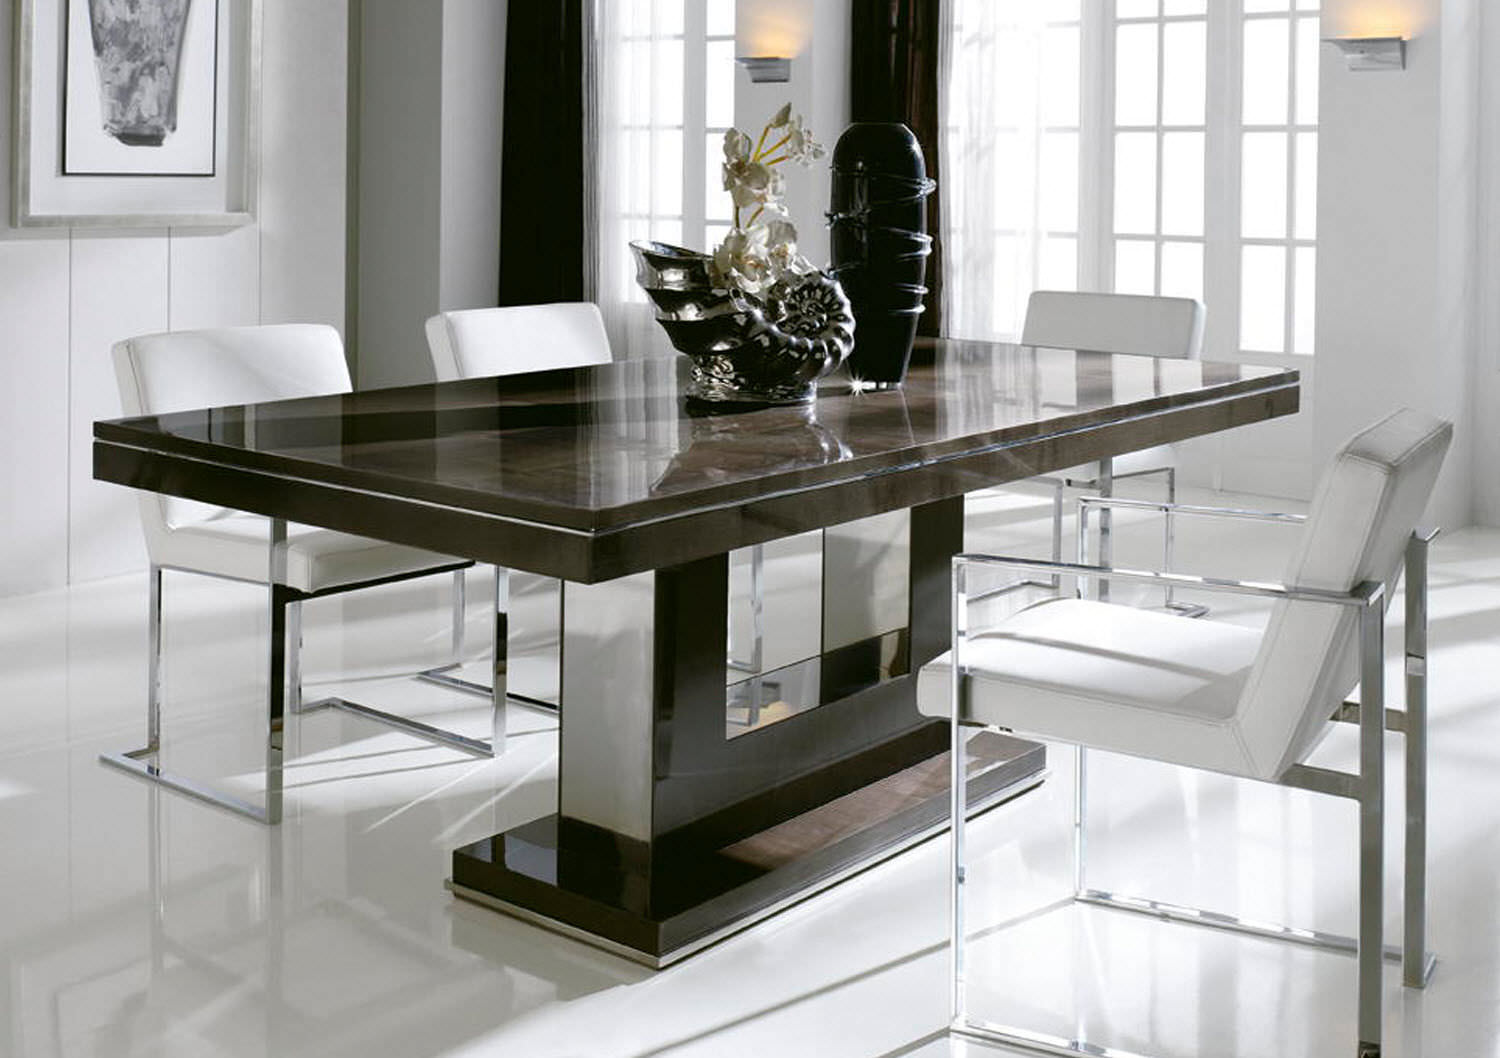 Modern Dining Tables Orange Shine Shining Contemporary Dining Tables Simple  Great Chocolate Brown Wooden Table Black